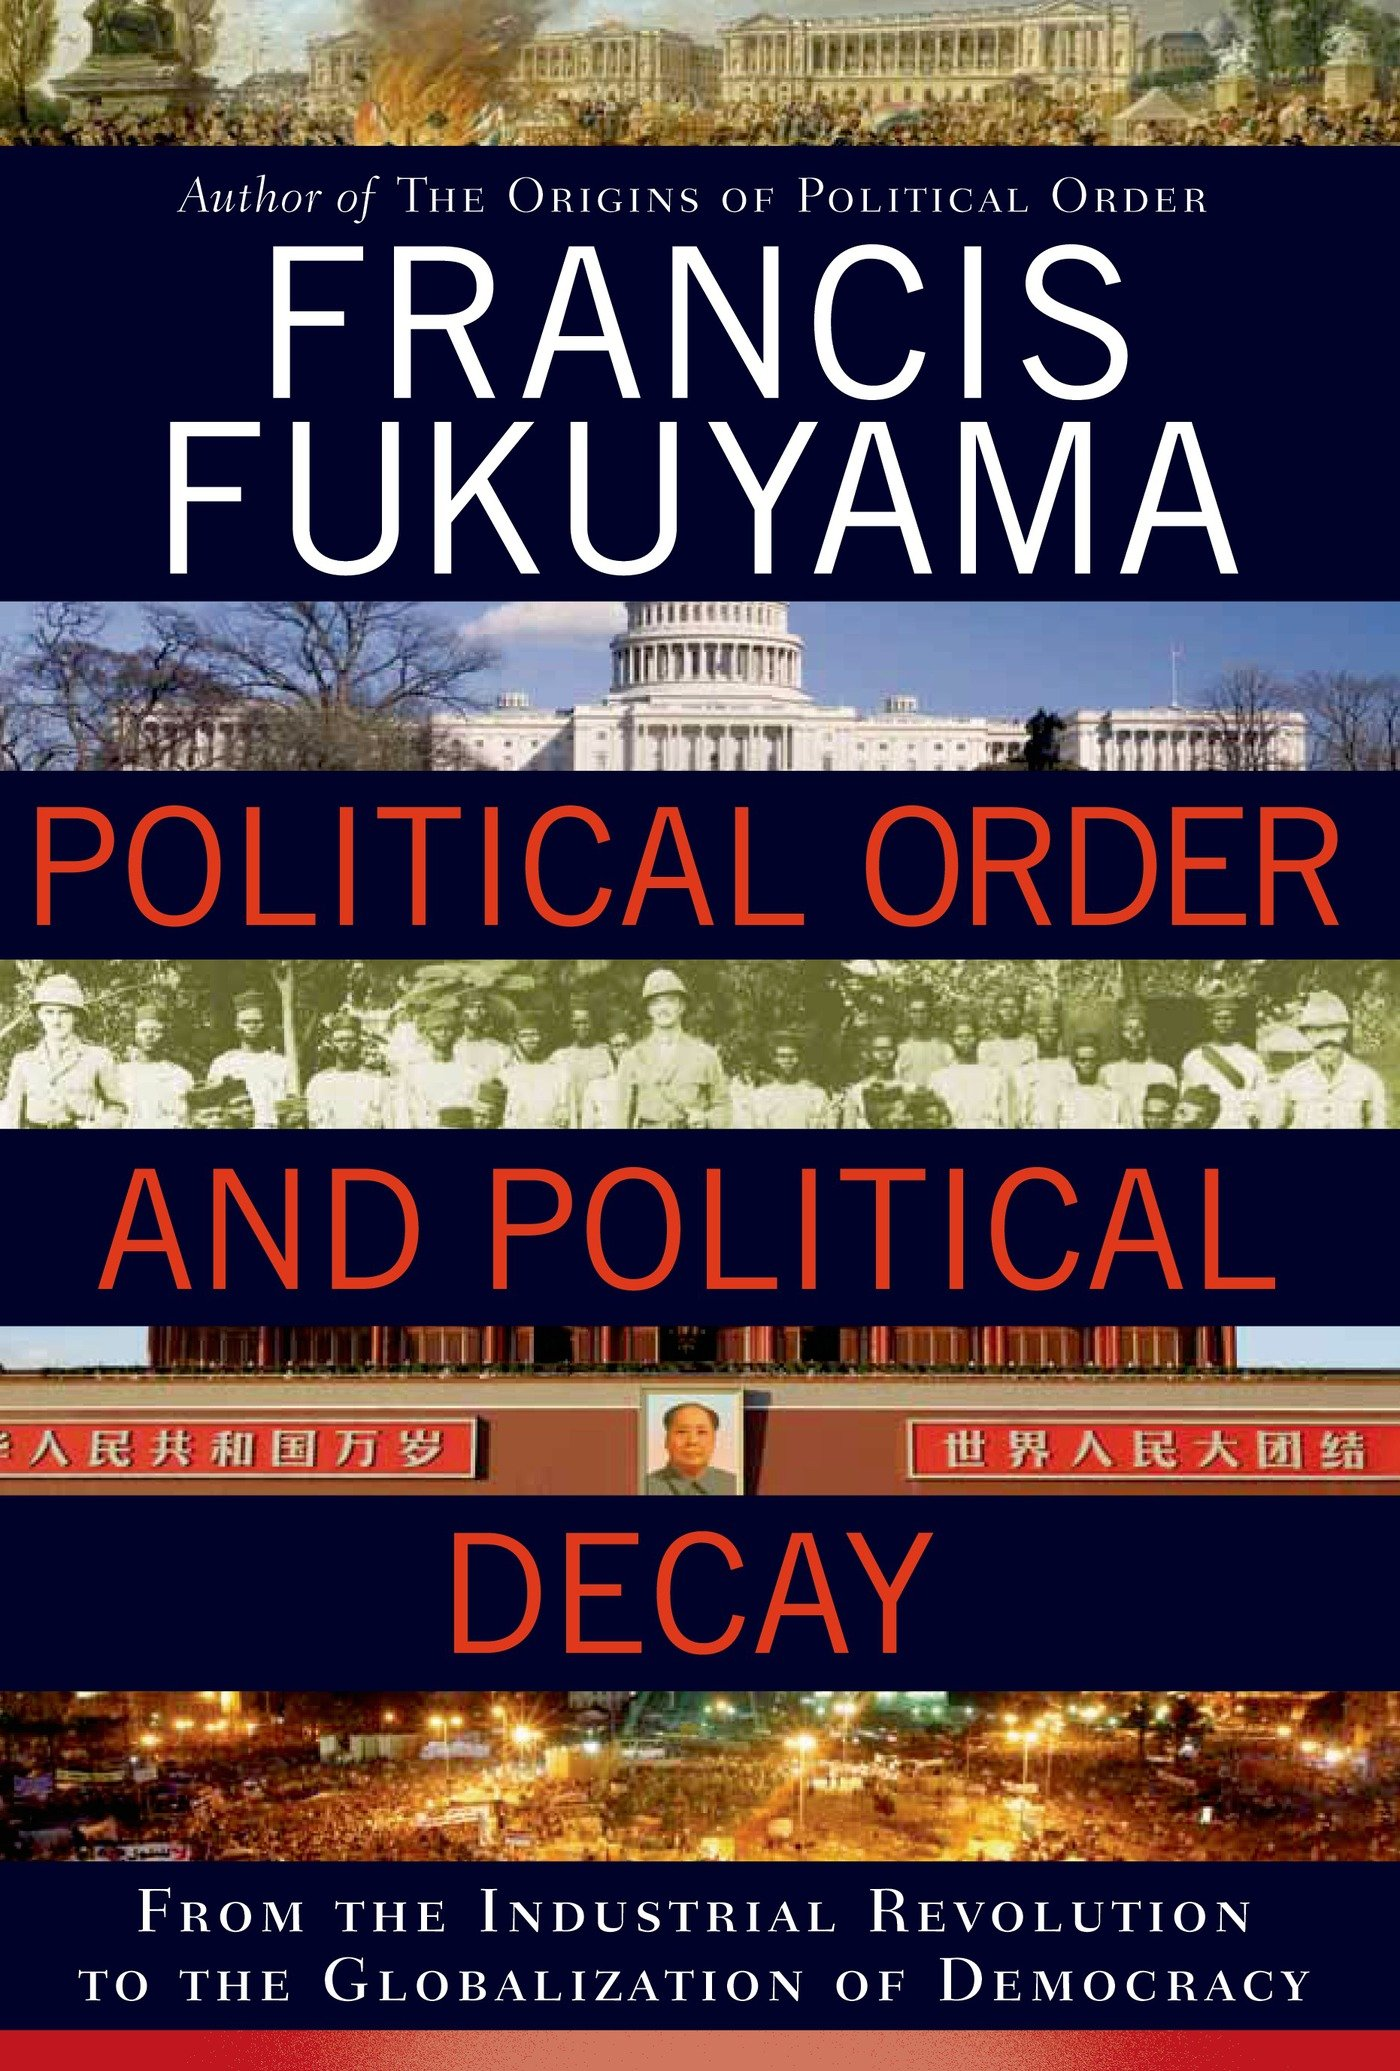 Political Order And Political Decay  From The Industrial Revolution To The Globalization Of Democracy  English Edition